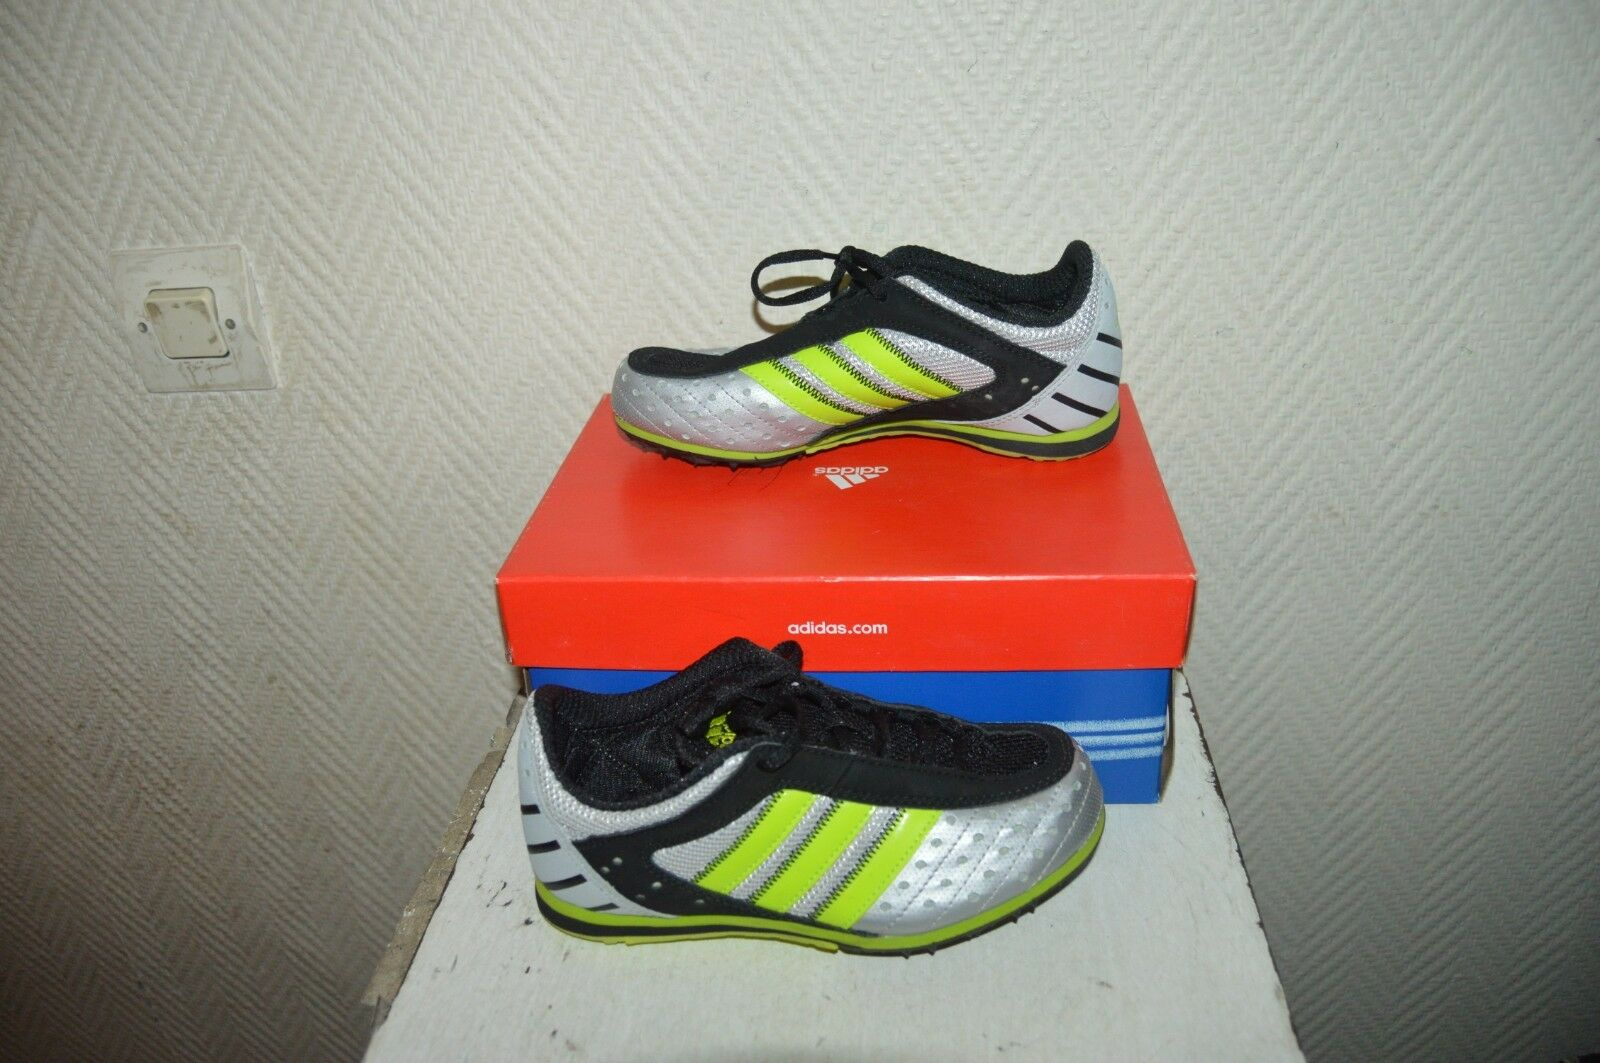 CHAUSSURE ATHLESTISME POINTE ADIDAS size 33 SHOES shoes shoes NEUF